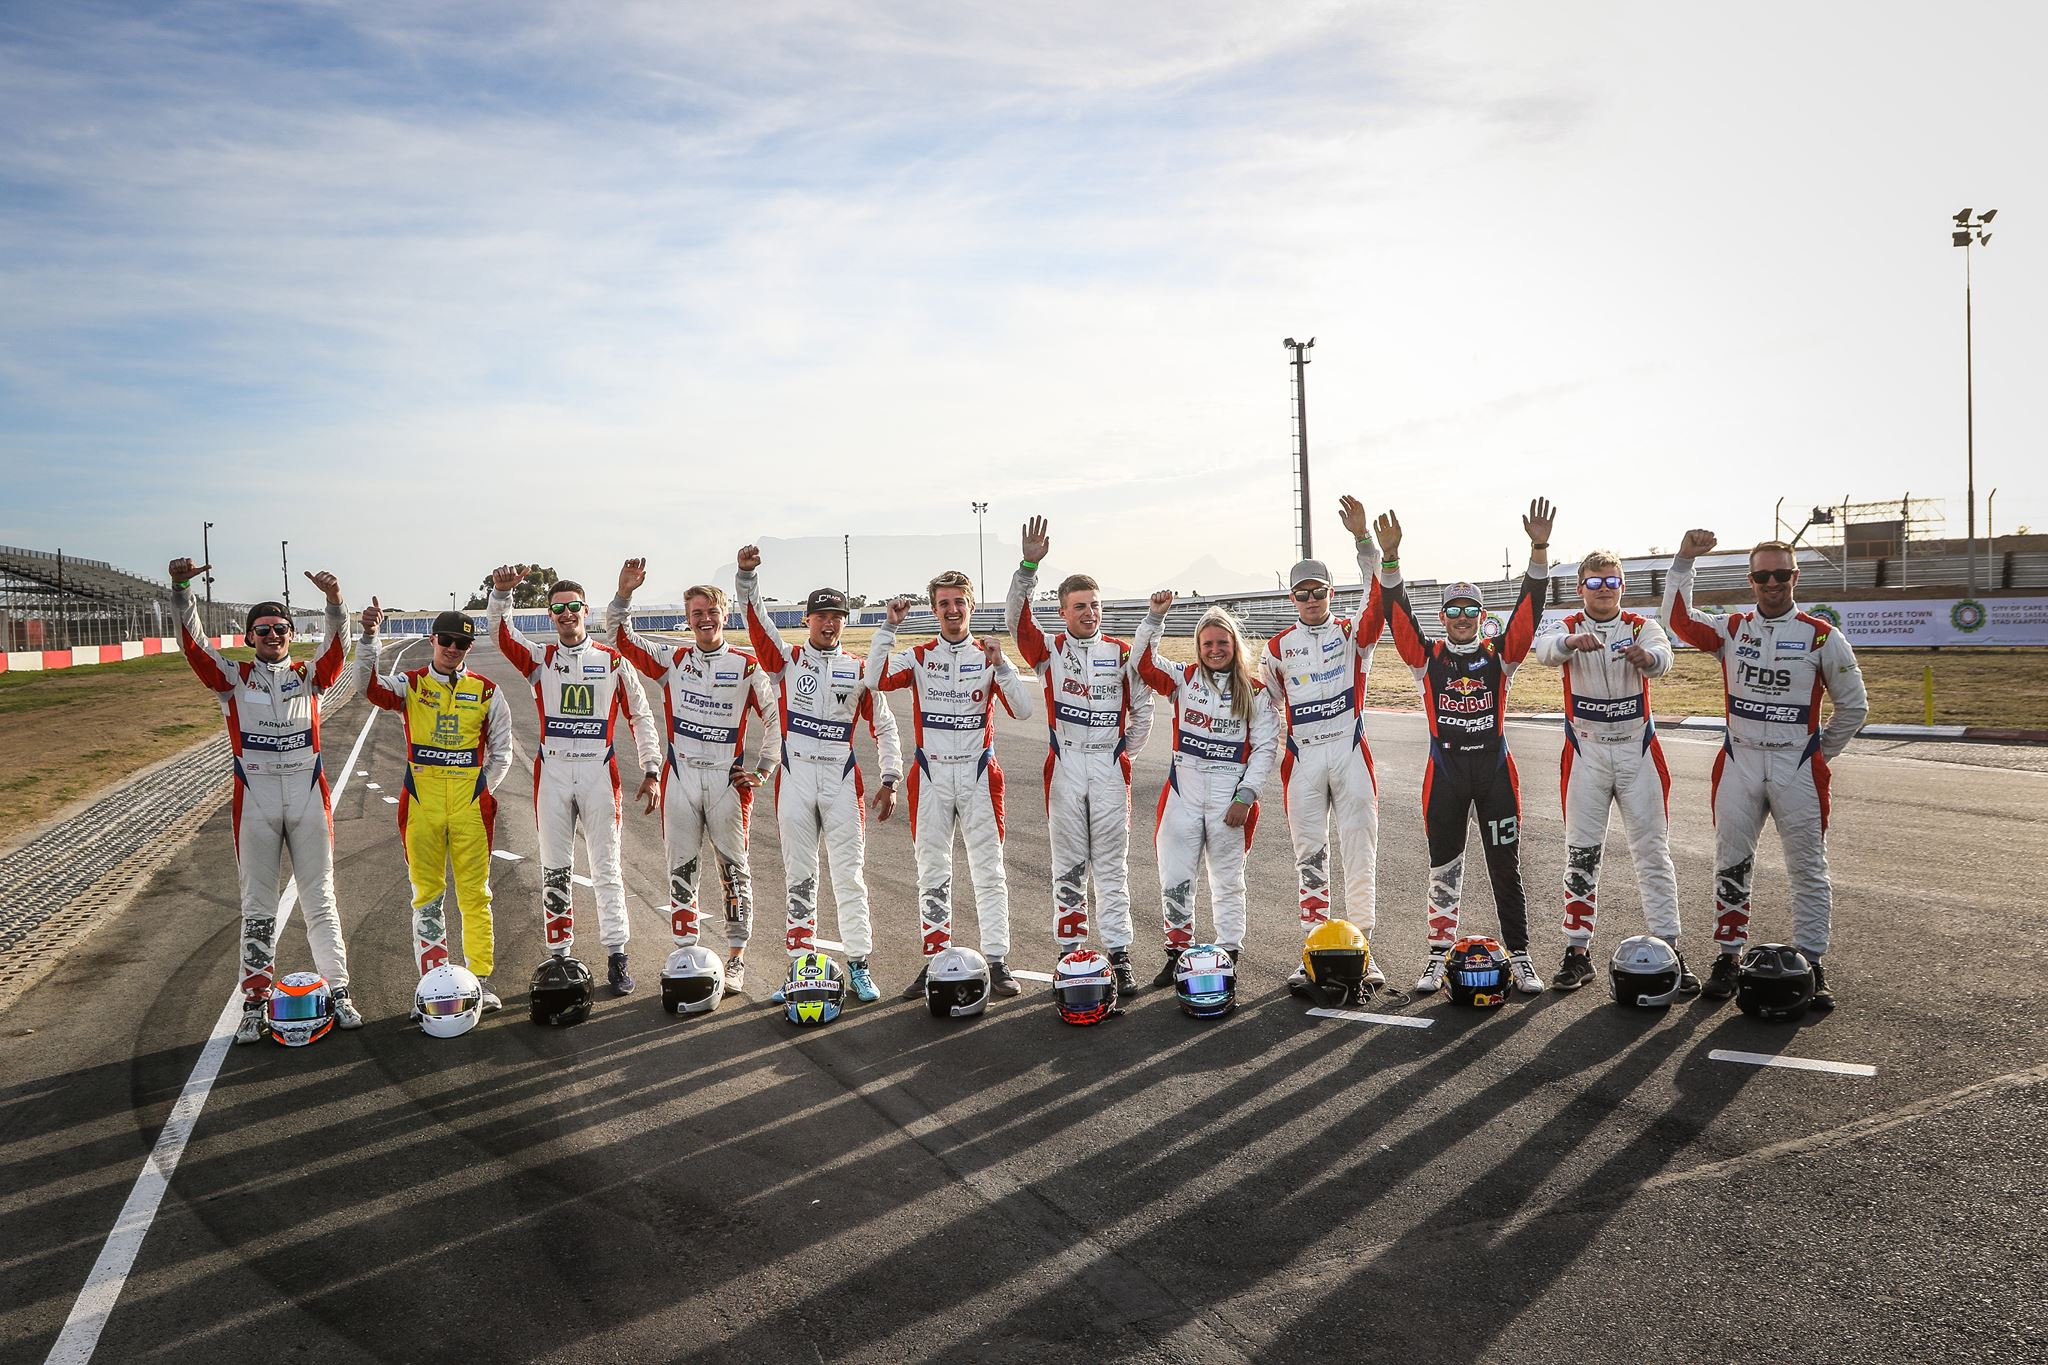 P1 Advanced Racewear continue as official RX2 International Series race suit provider